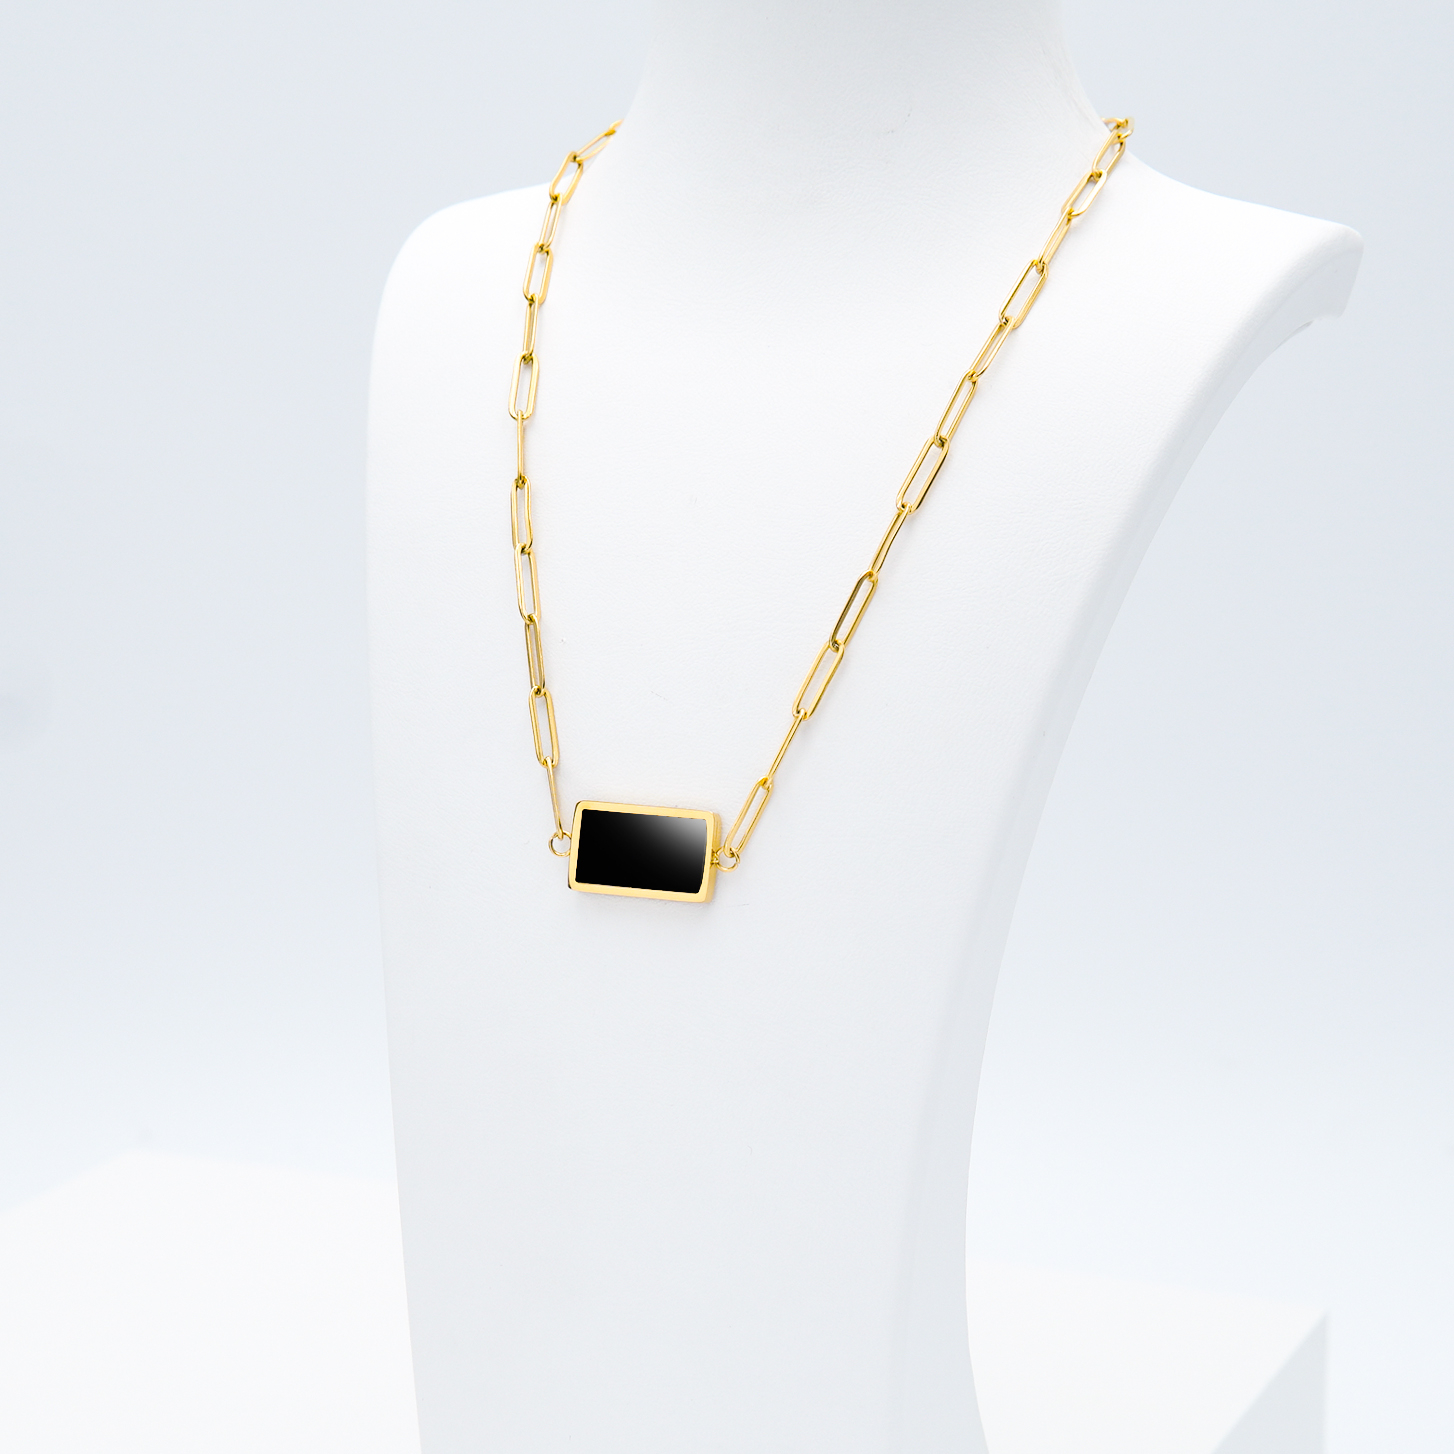 1- Gold in night Gold Edition Halsband Modern and trendy Necklace and women jewelry and accessories from SWEVALI fashion Sweden